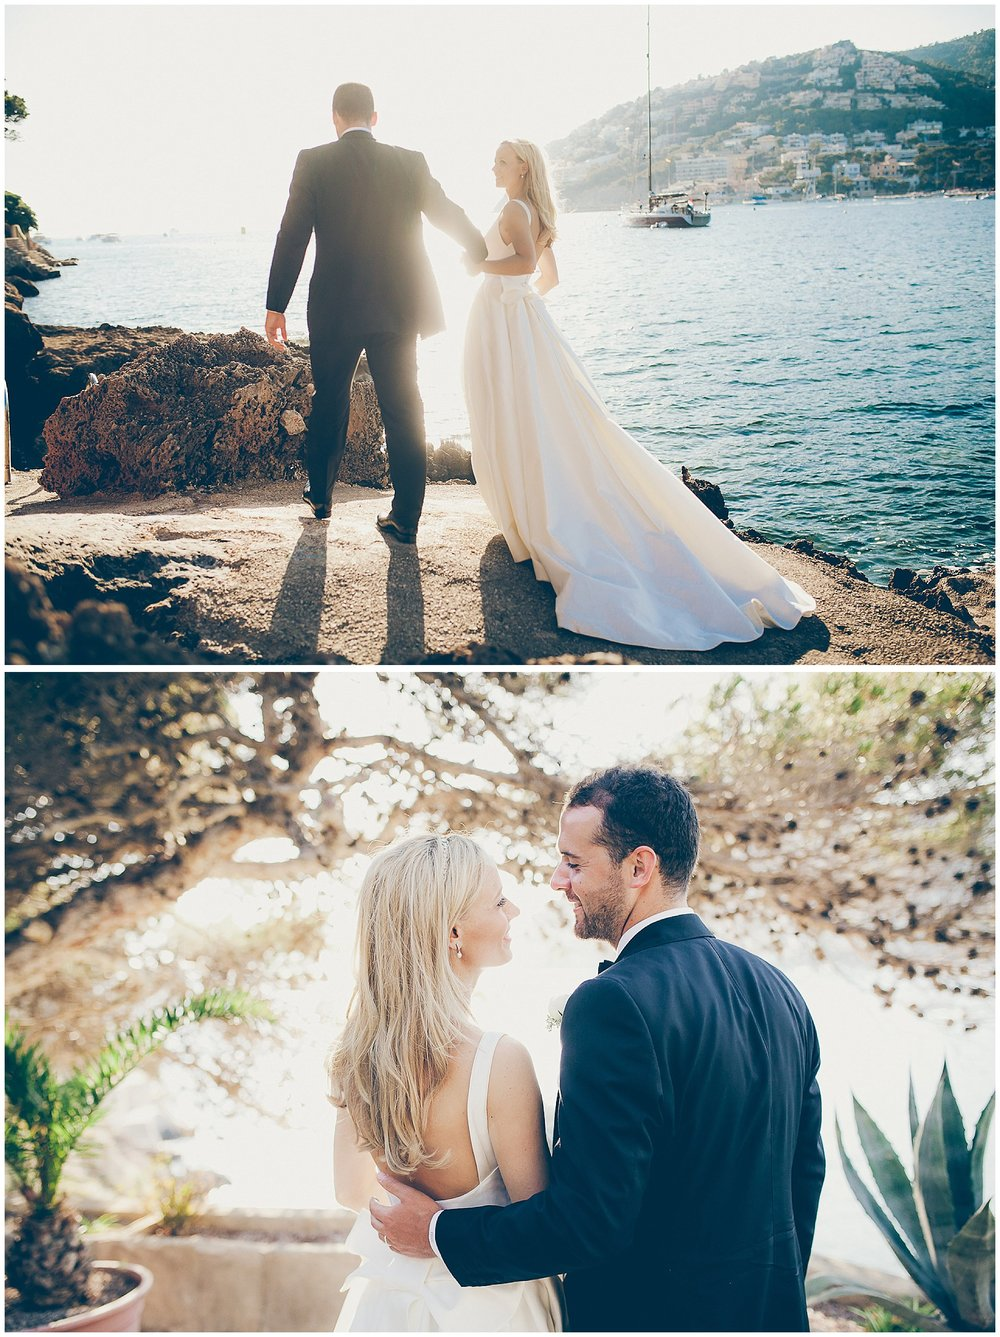 Church_VillaItalia_MallorcaWedding_FionaClairPhotography-149.jpg